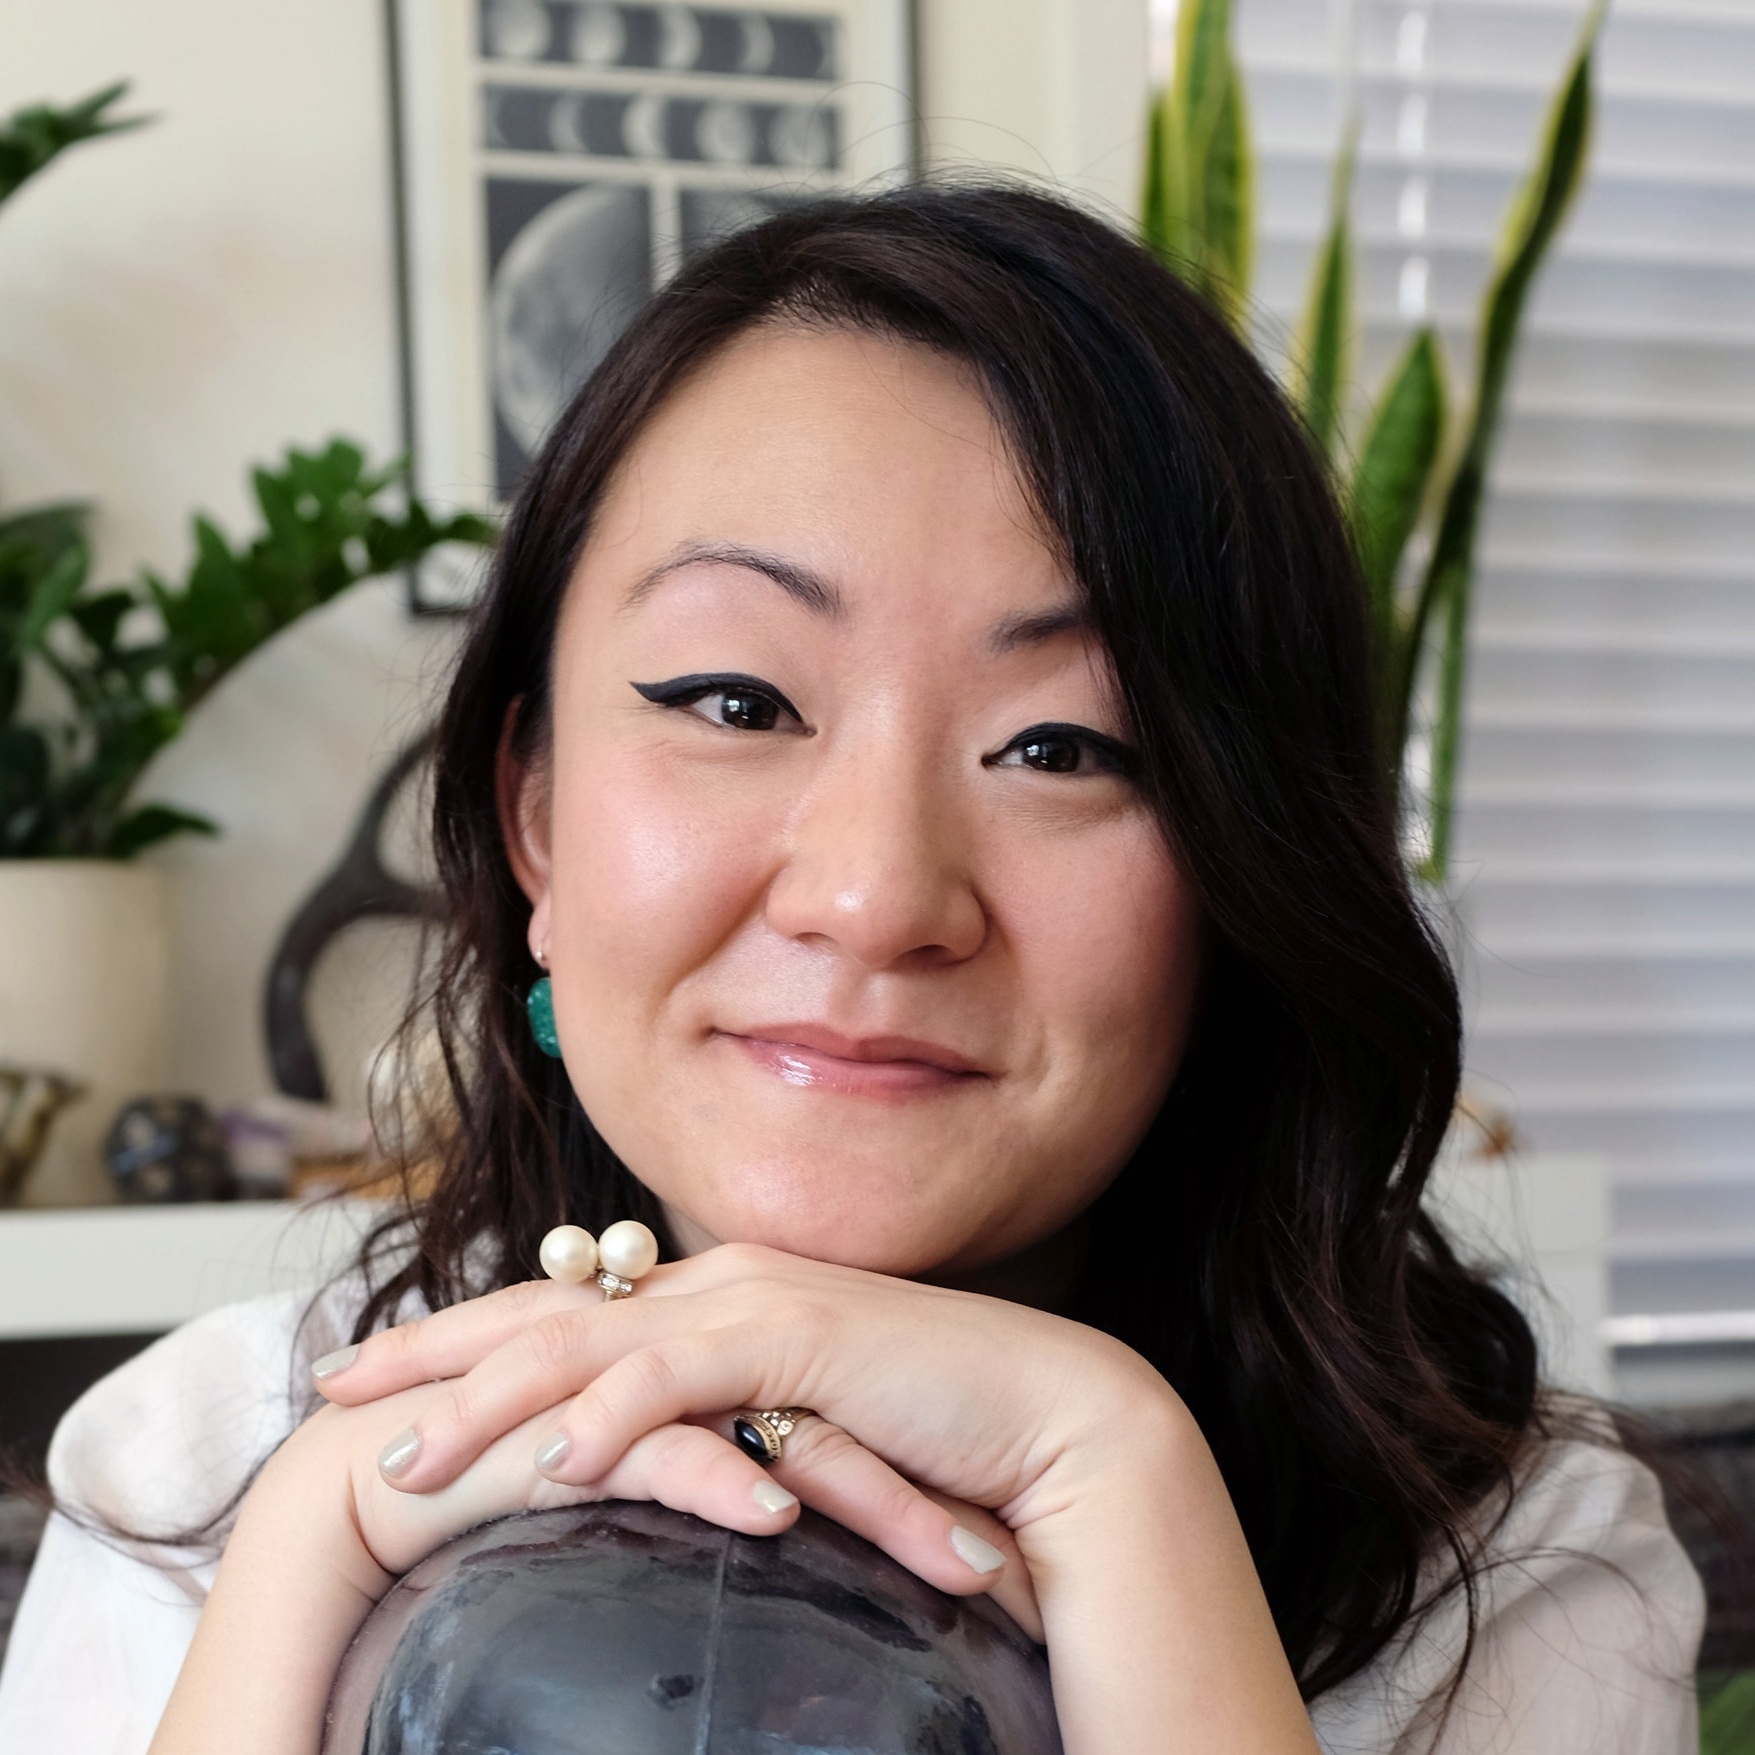 Helen Shang  ('14) is a Co-Producer on the upcoming LORD OF THE RINGS series on Amazon Prime. Helen previously was a staffed on Netflix's 13 REASONS WHY and NBC's HANNIBAL.